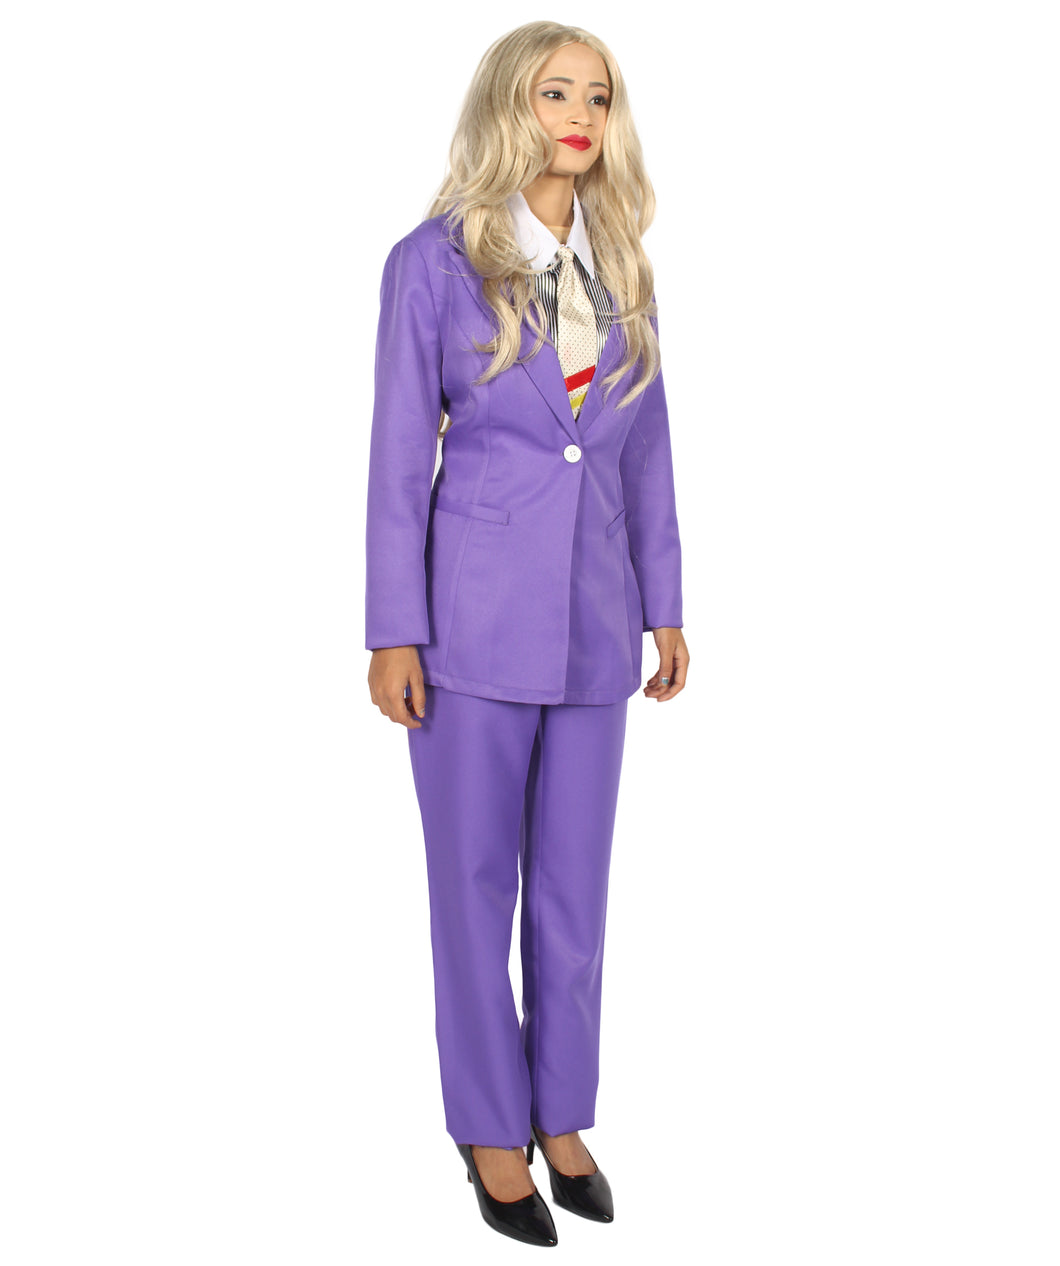 Womenu0027s Deluxe Costume for Cosplay Singer Bowie Purple Prince Party Suit HC- ...  sc 1 st  HalloweenPartyOnline & EXCLUSIVE! Womenu0027s Deluxe Costume for Cosplay Singer Bowie Purple Prin